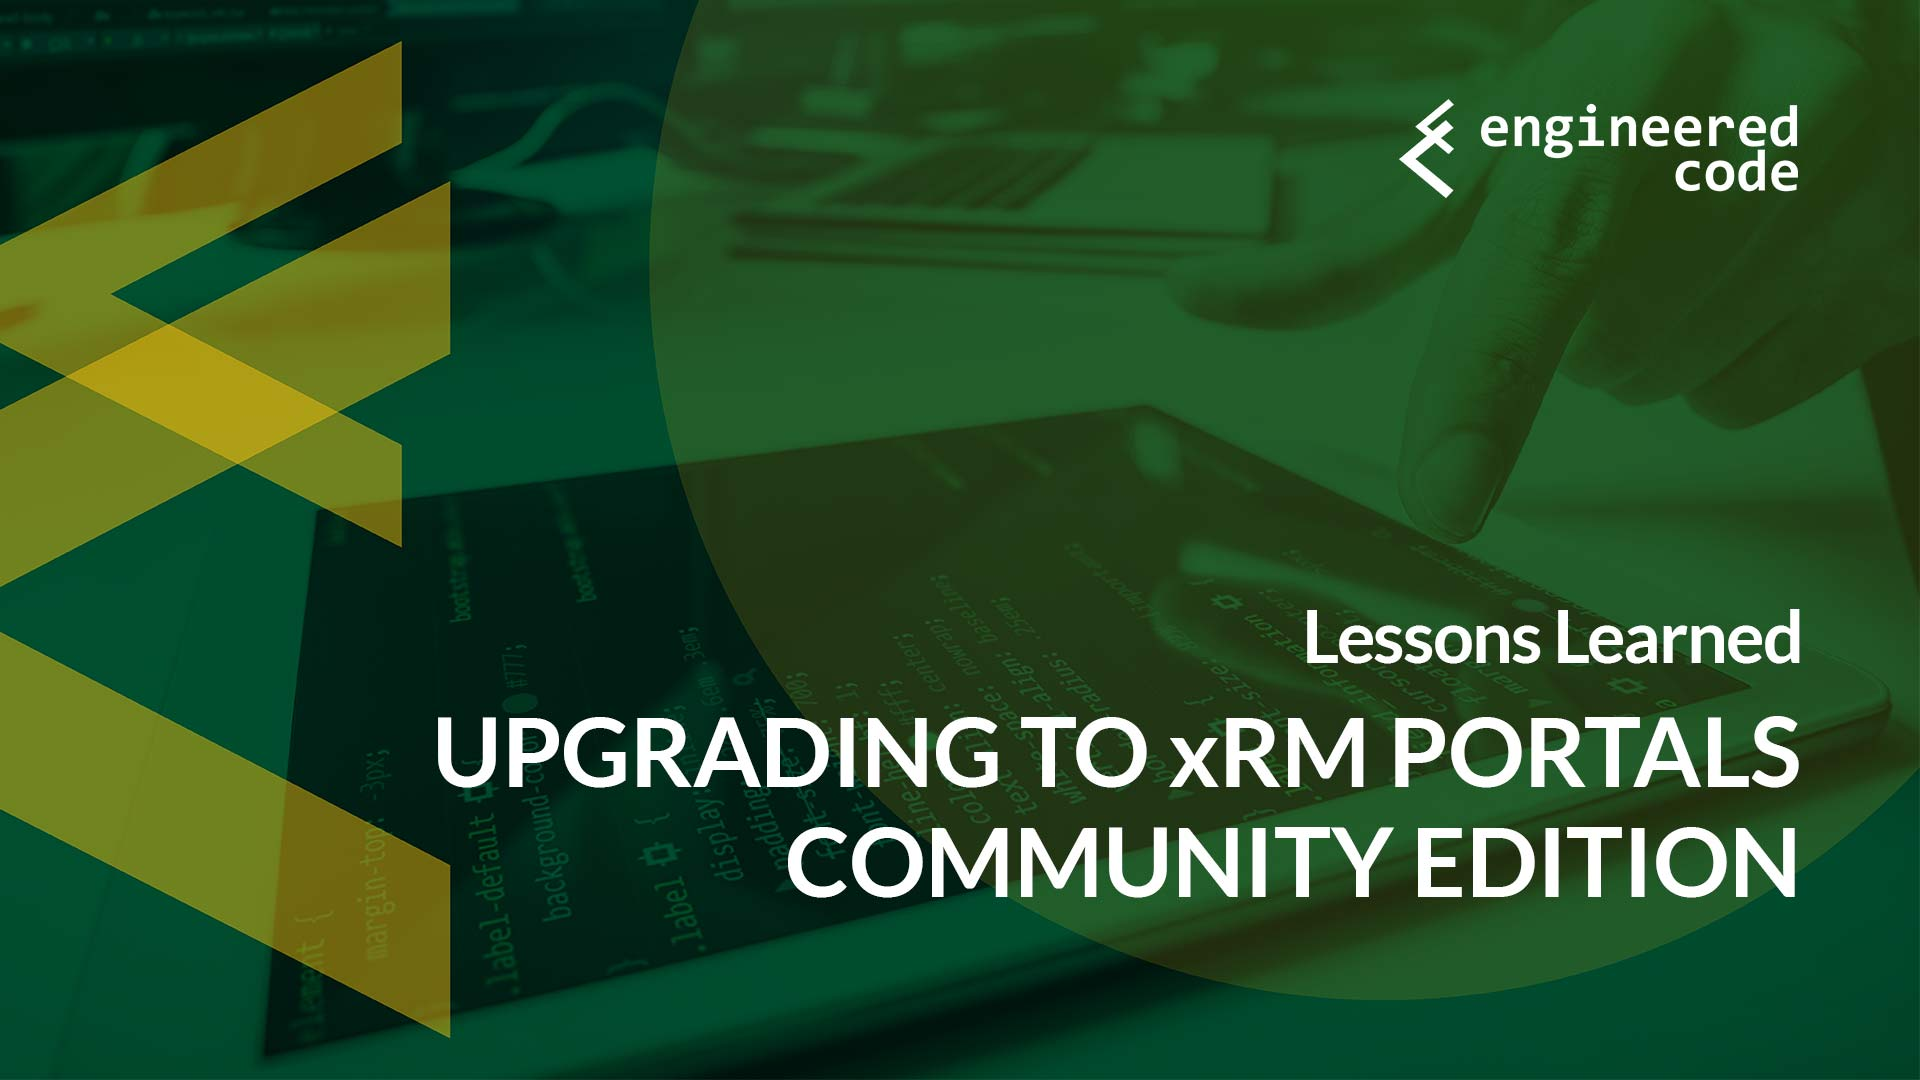 Engineered Code - Blog - Upgrading to xRM Portals Community Edition